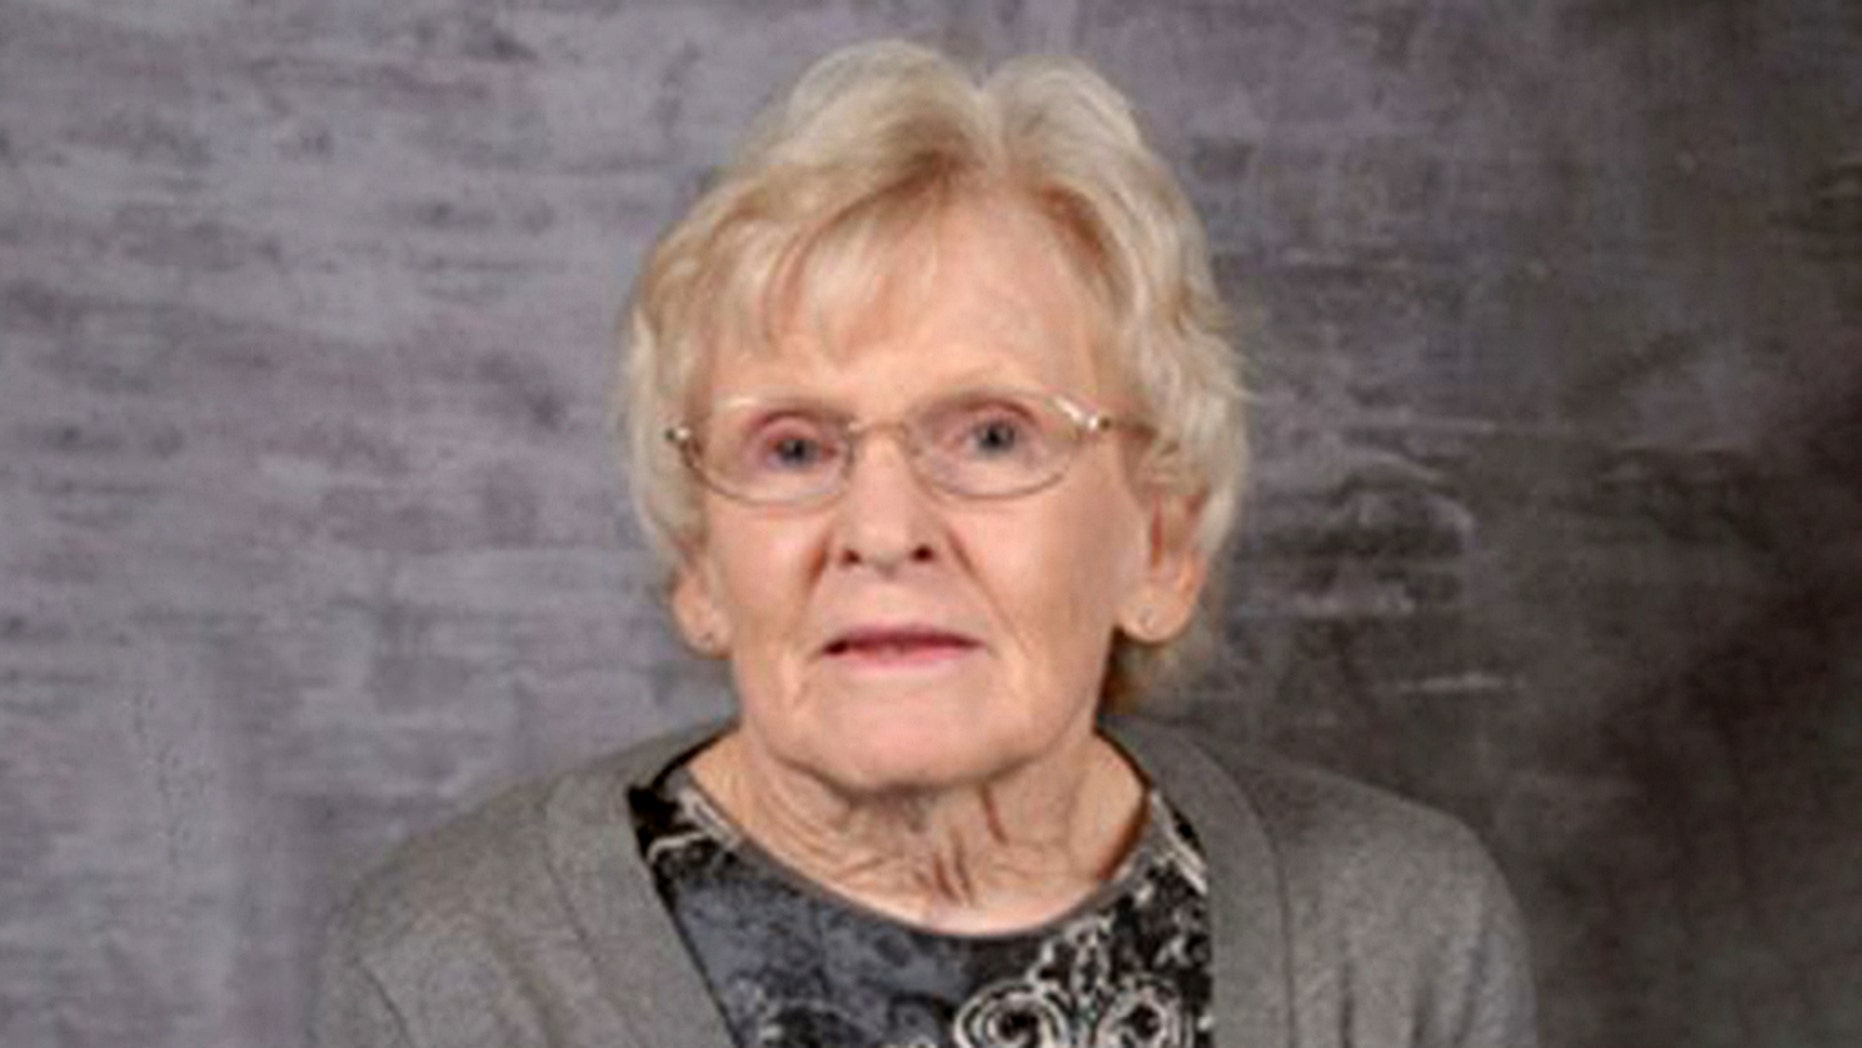 Brenda Hamilton, 77, died after a mysterious animal attack in Pantego, North Carolina, on February 15, 2019.